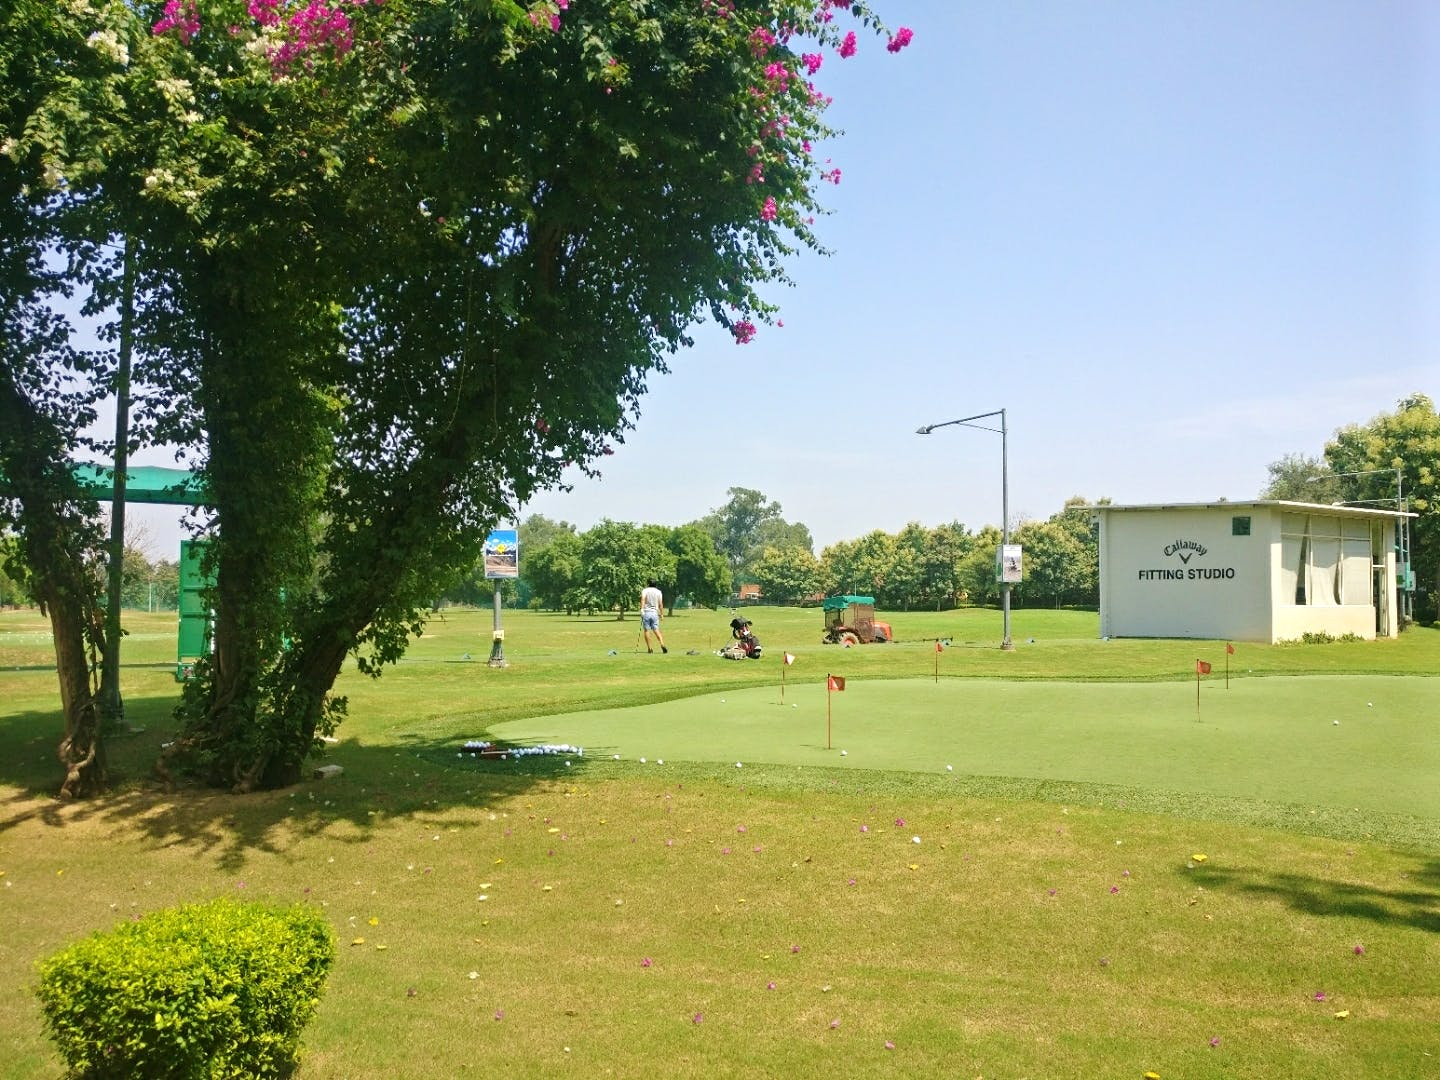 Sport venue,Grass,Lawn,Tree,Land lot,Park,Golf course,Recreation,Competition event,Plant